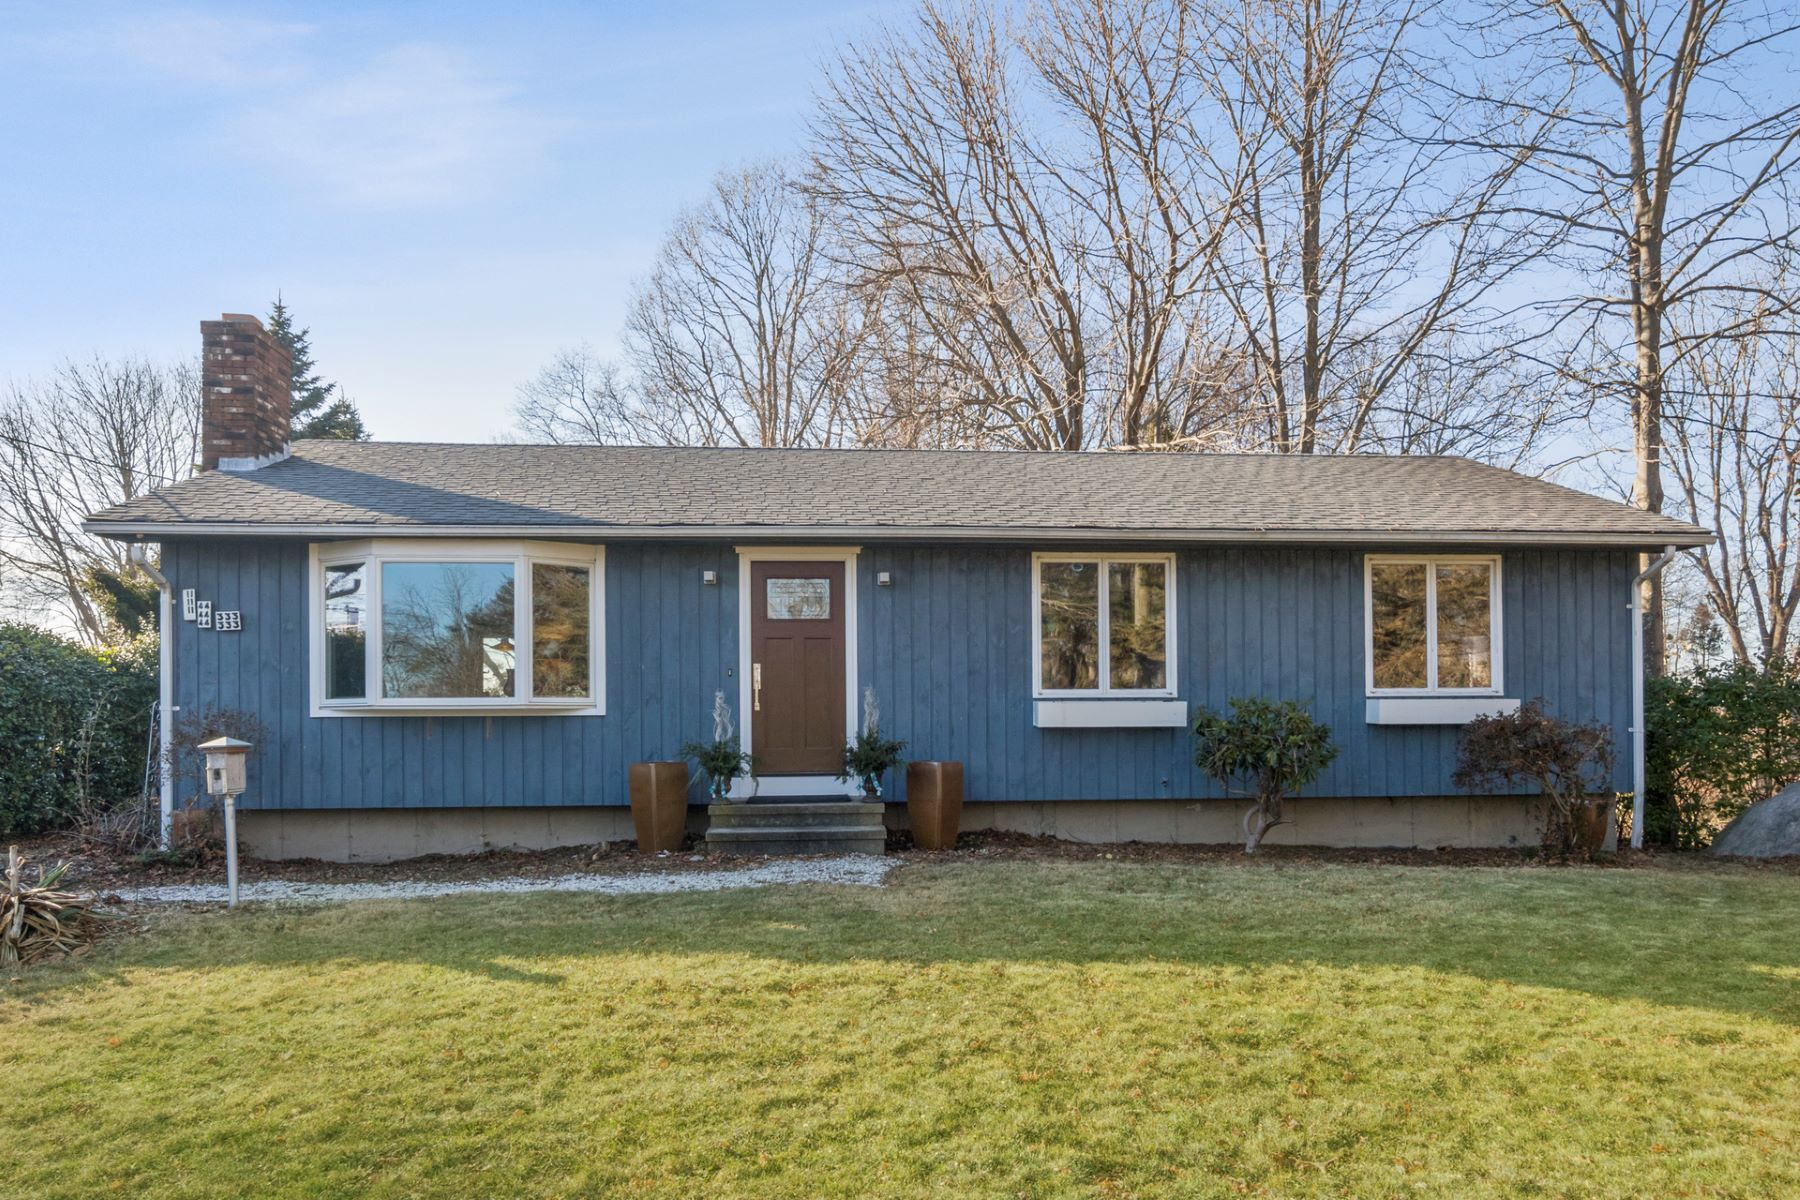 Single Family Homes for Sale at 143 Beach Park Road 143 Beach Park Rd Clinton, Connecticut 06413 United States